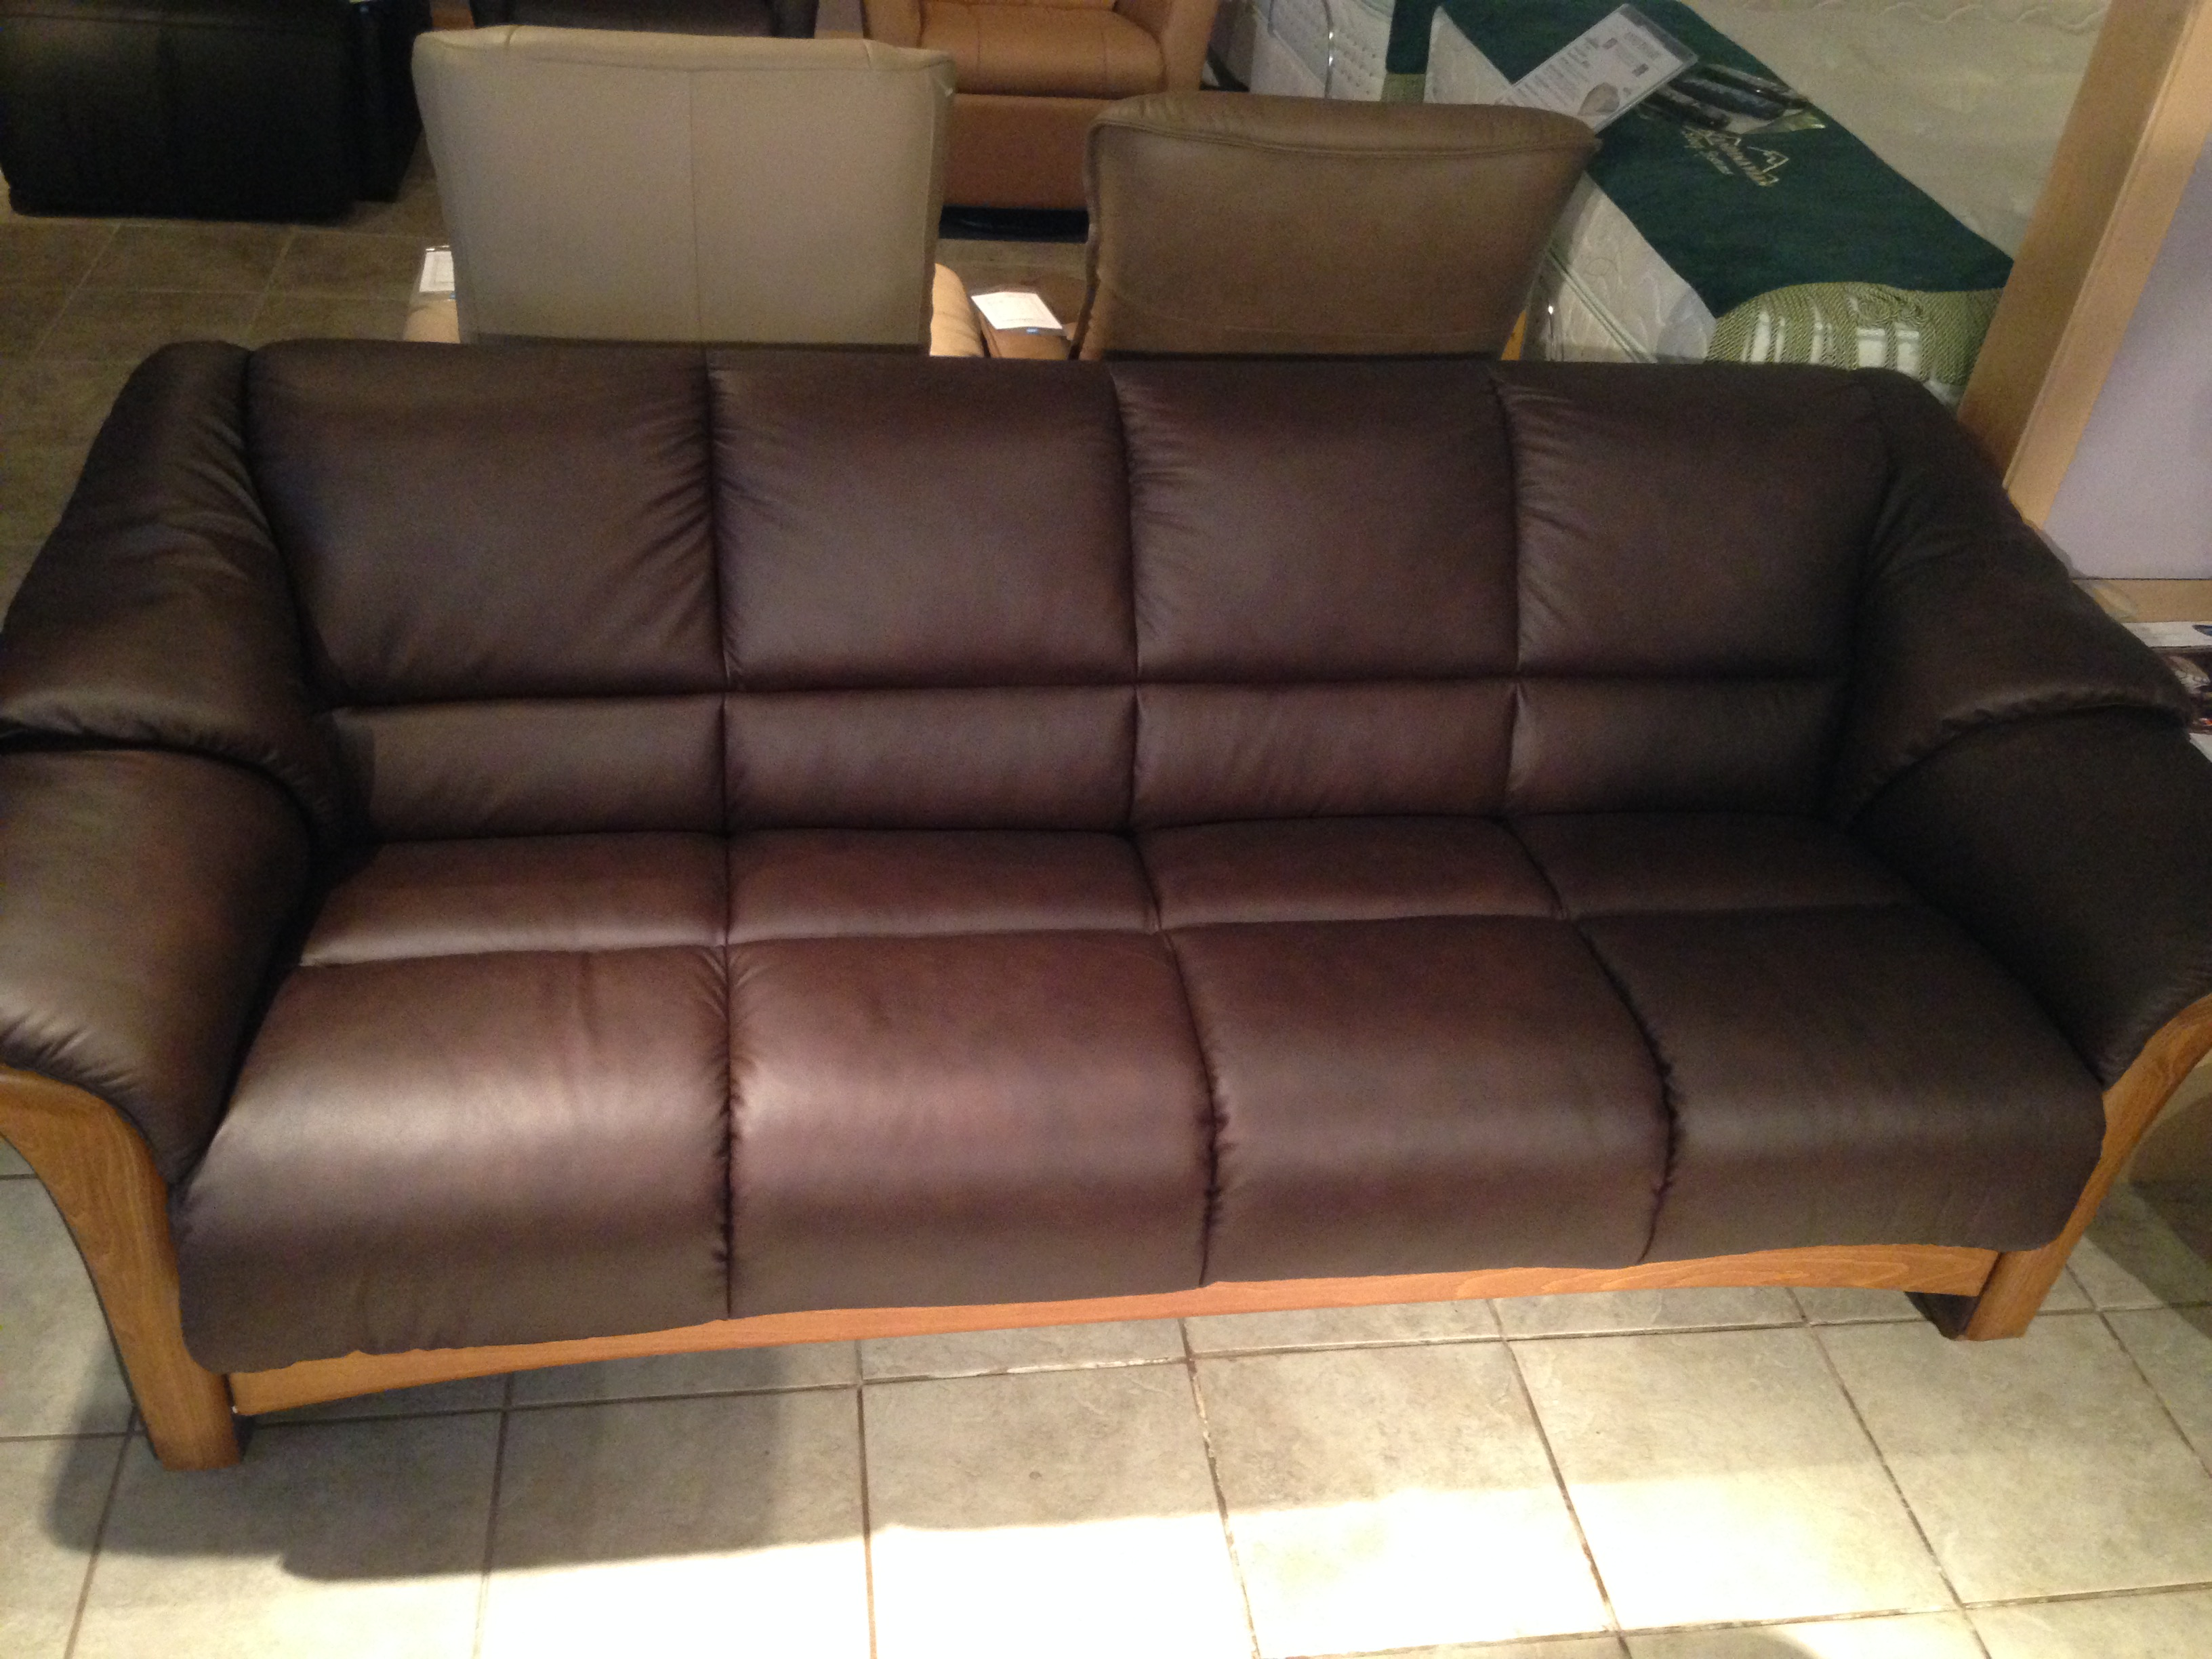 Stressless Sofa 600 Stressless Sofa Clearance Home And Textiles